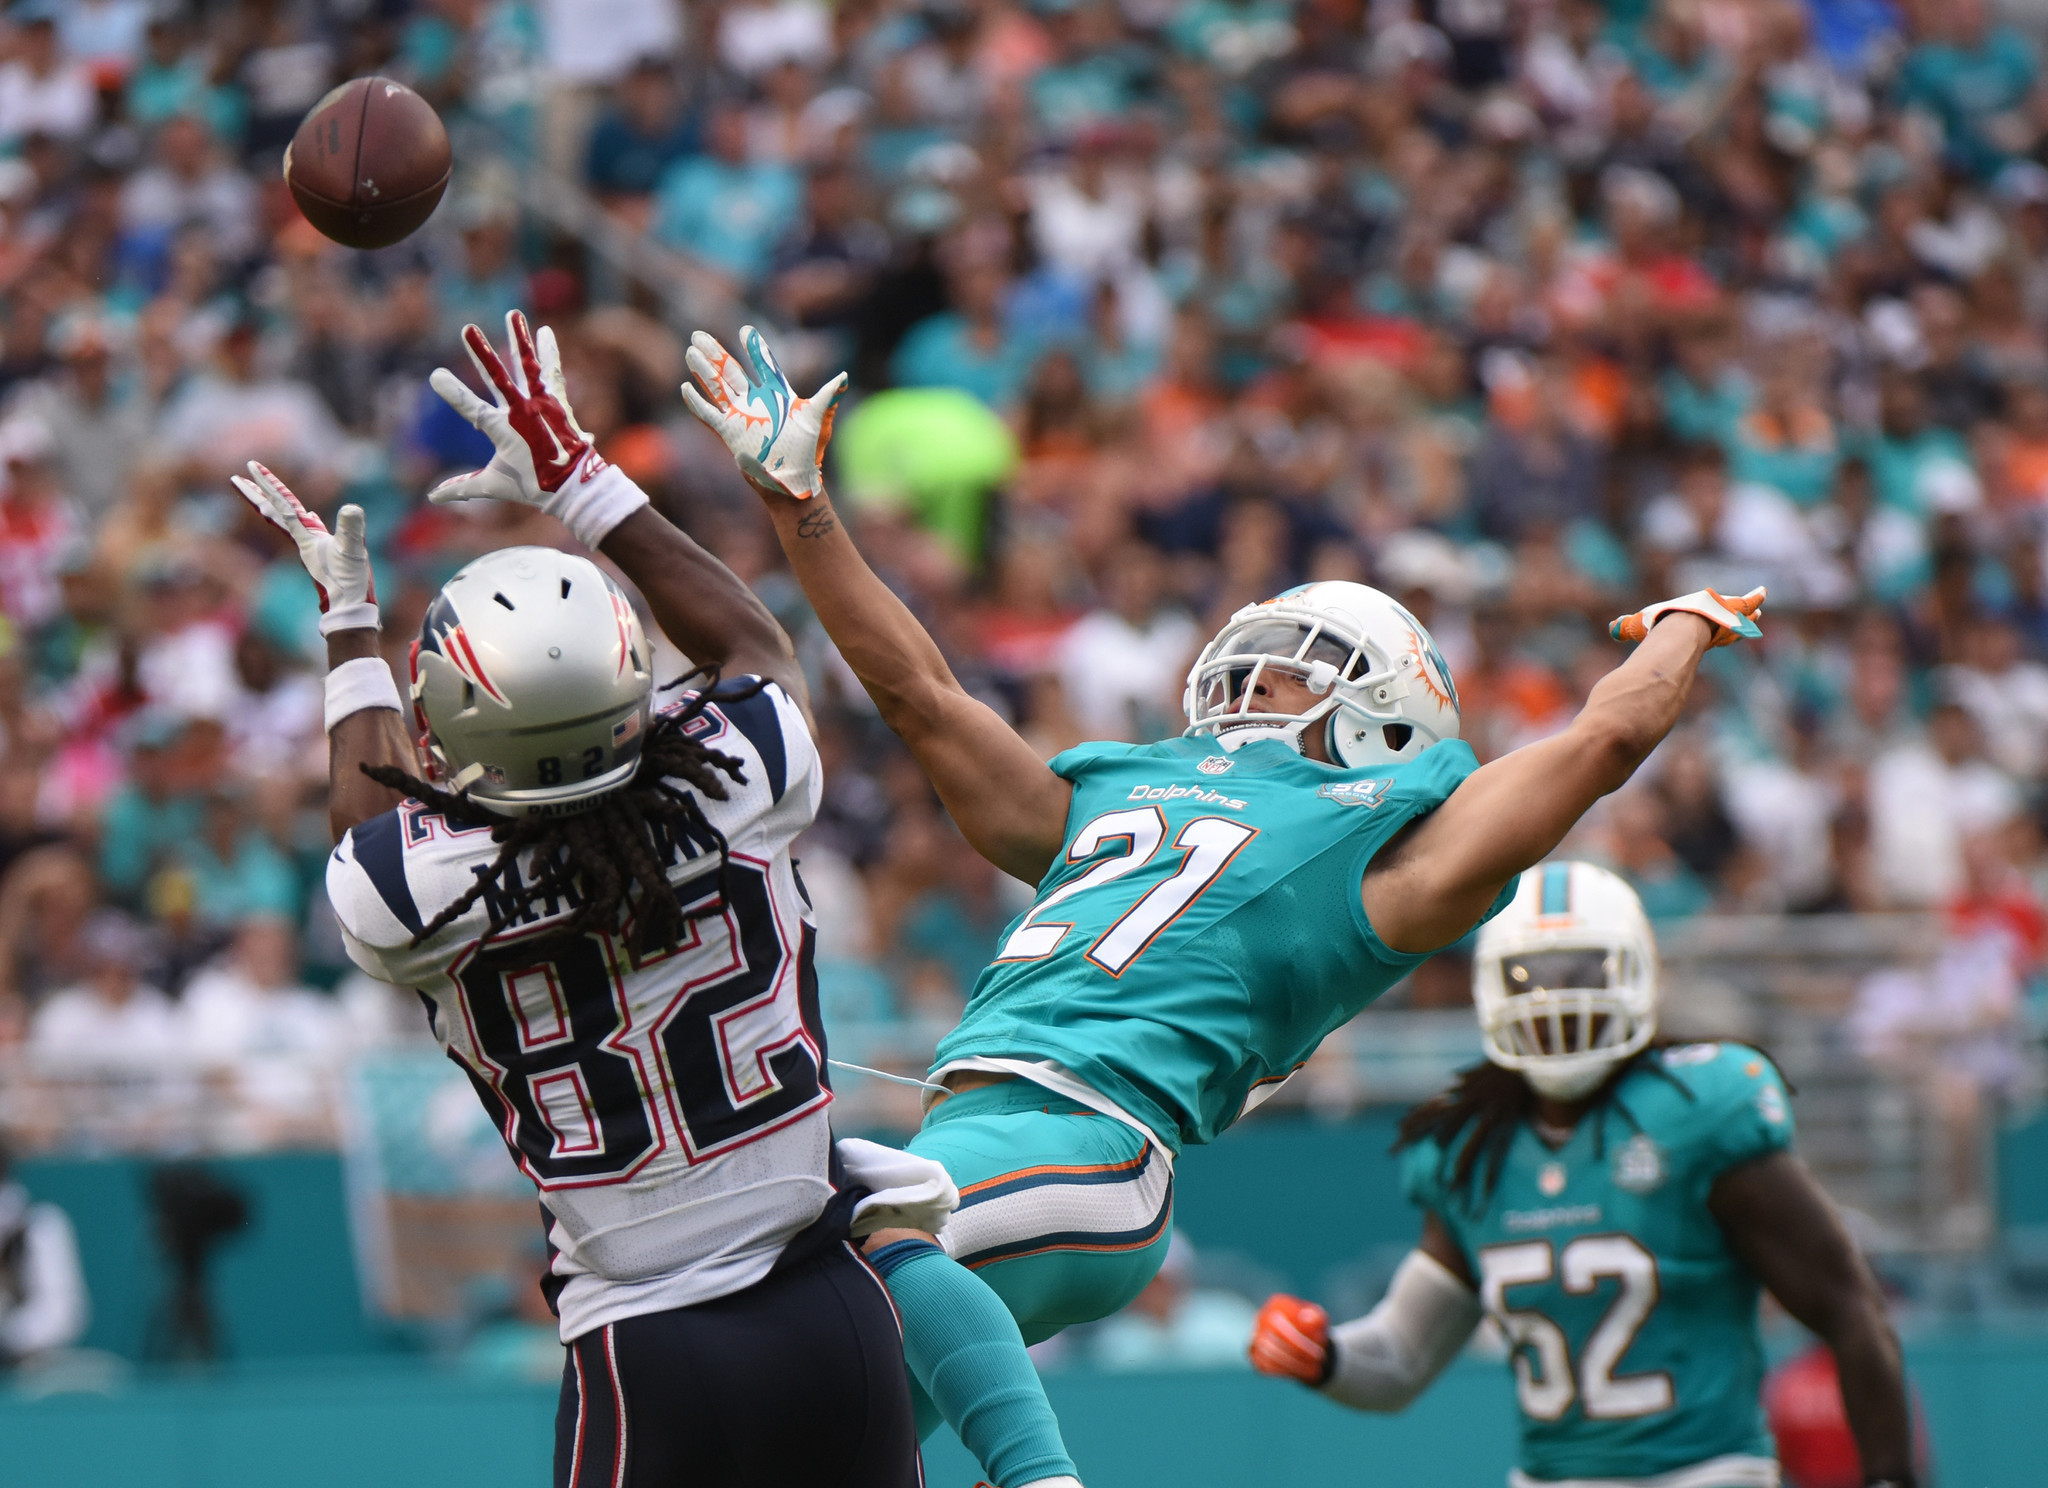 Perkins Dolphins should retain Cam Wake and Brent Grimes Sun